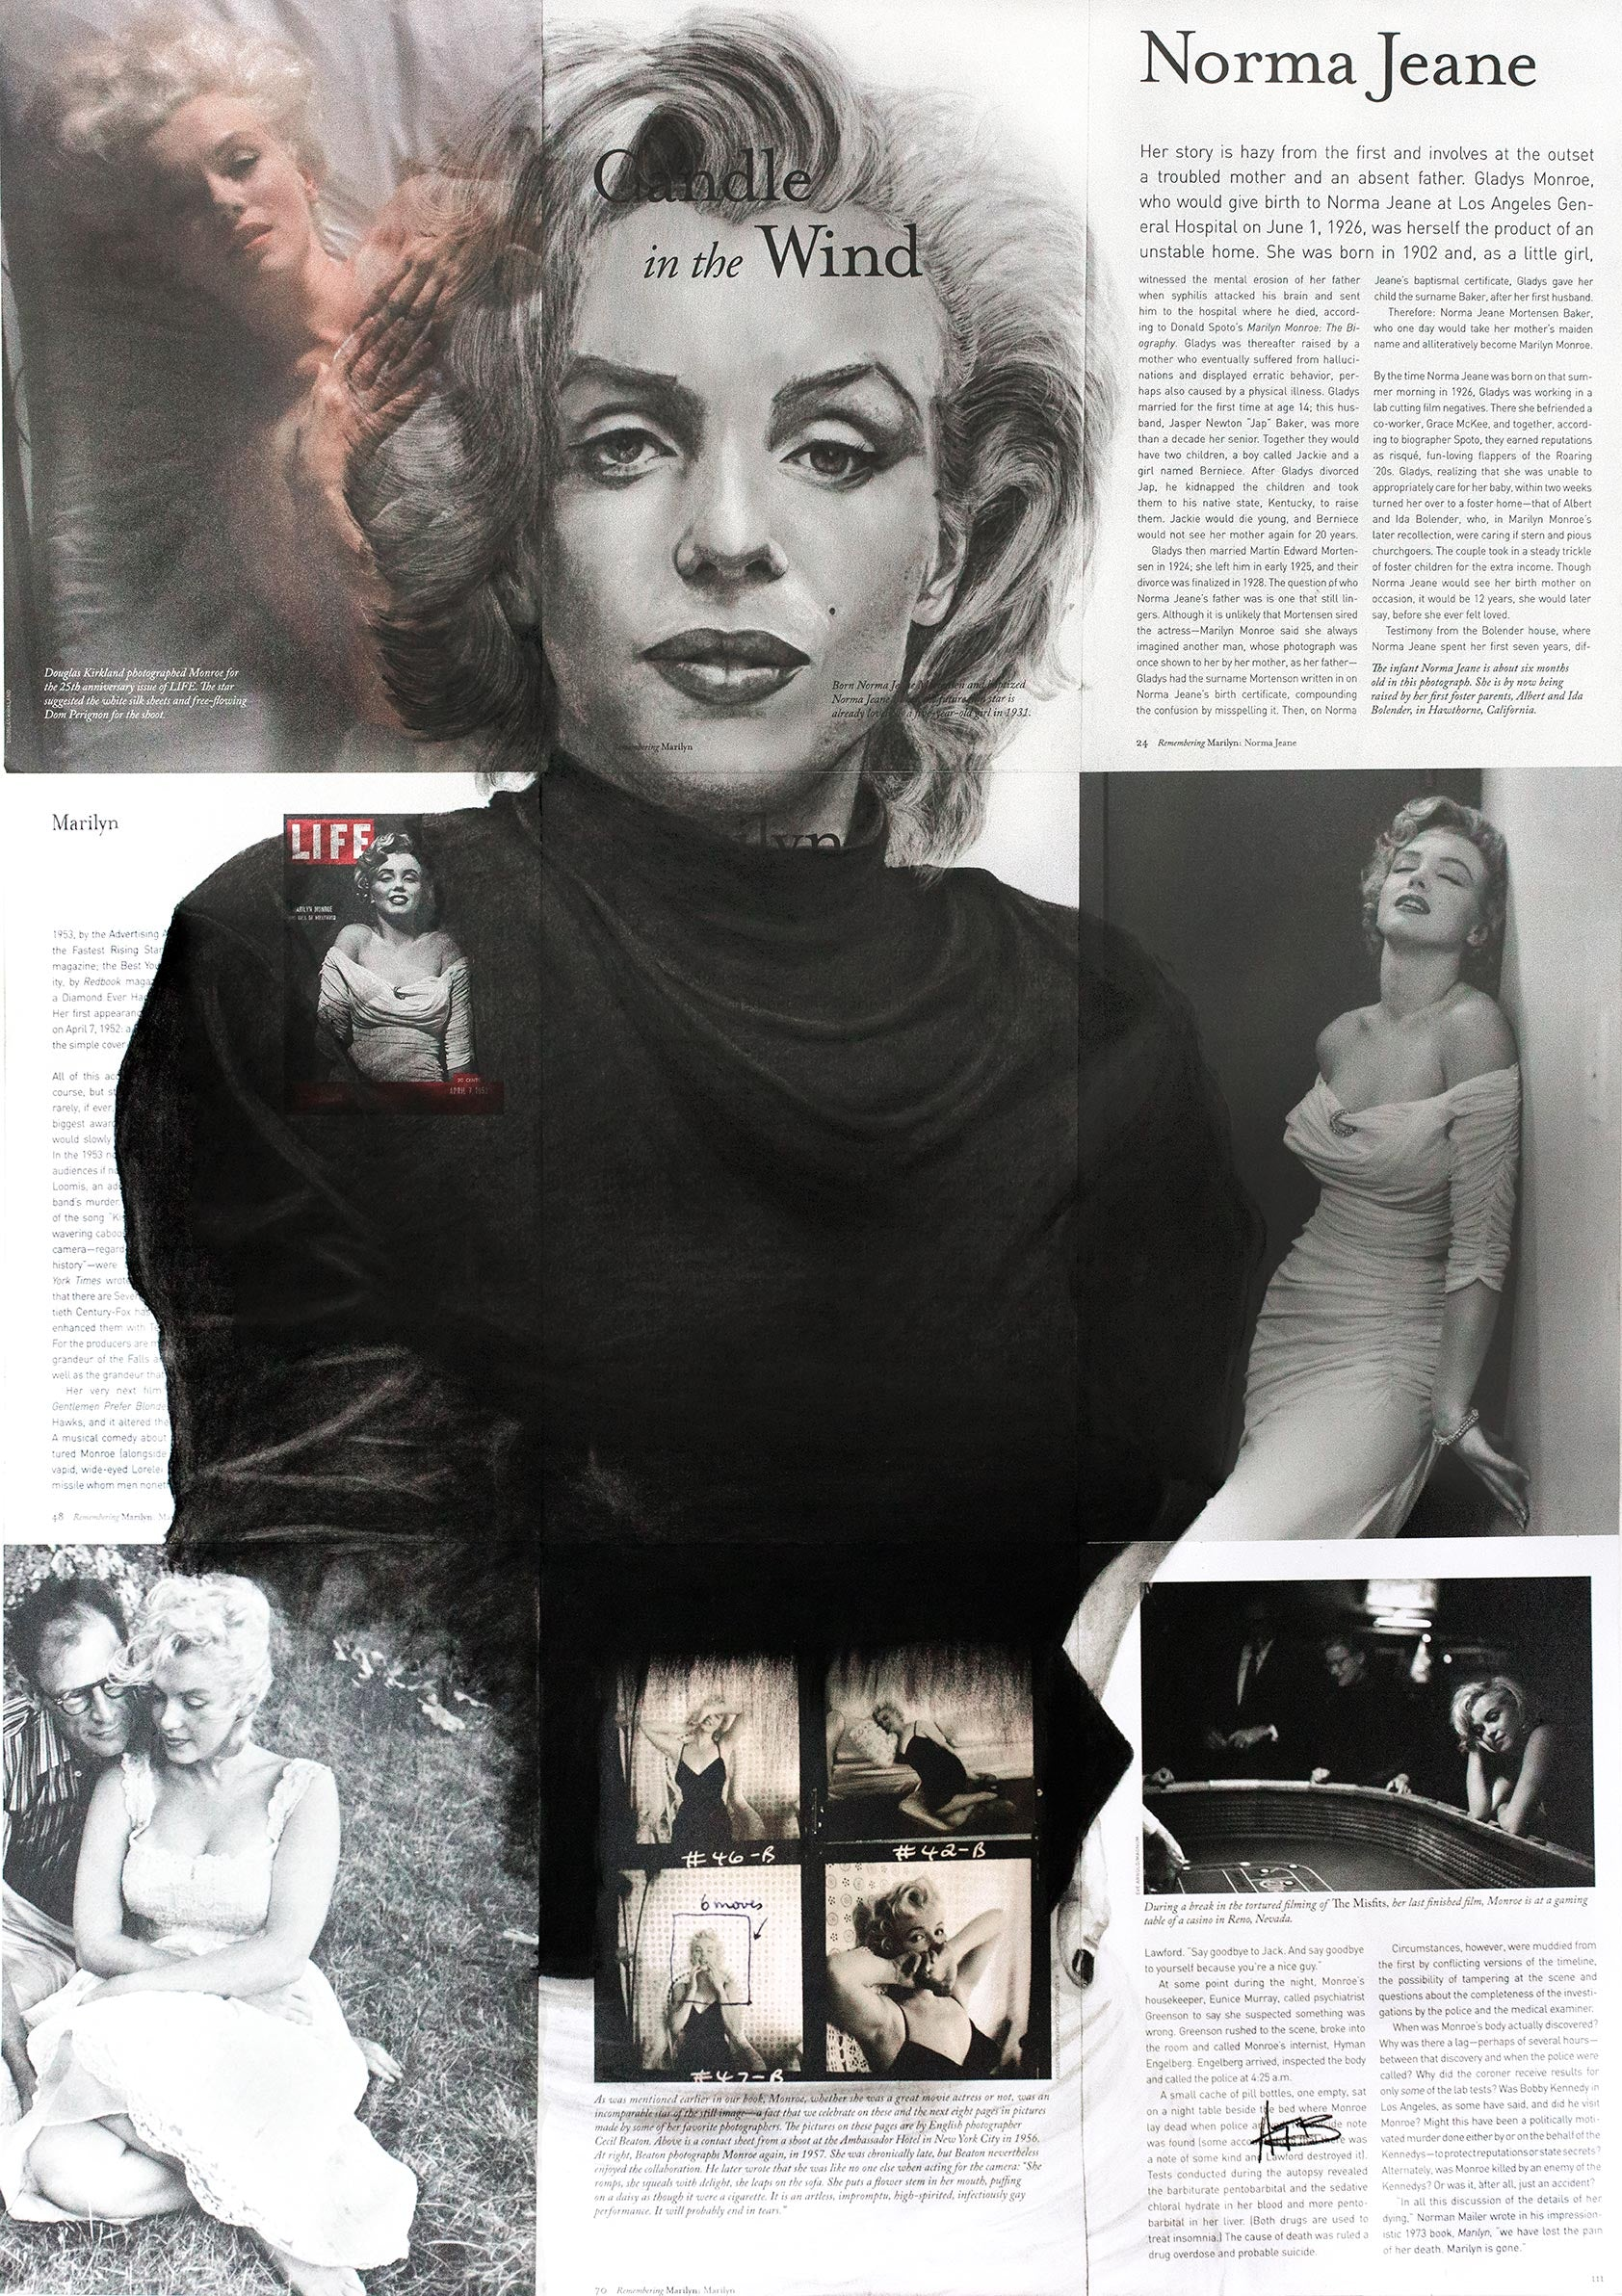 MARILYN MONROE 'Candle in the Wind'